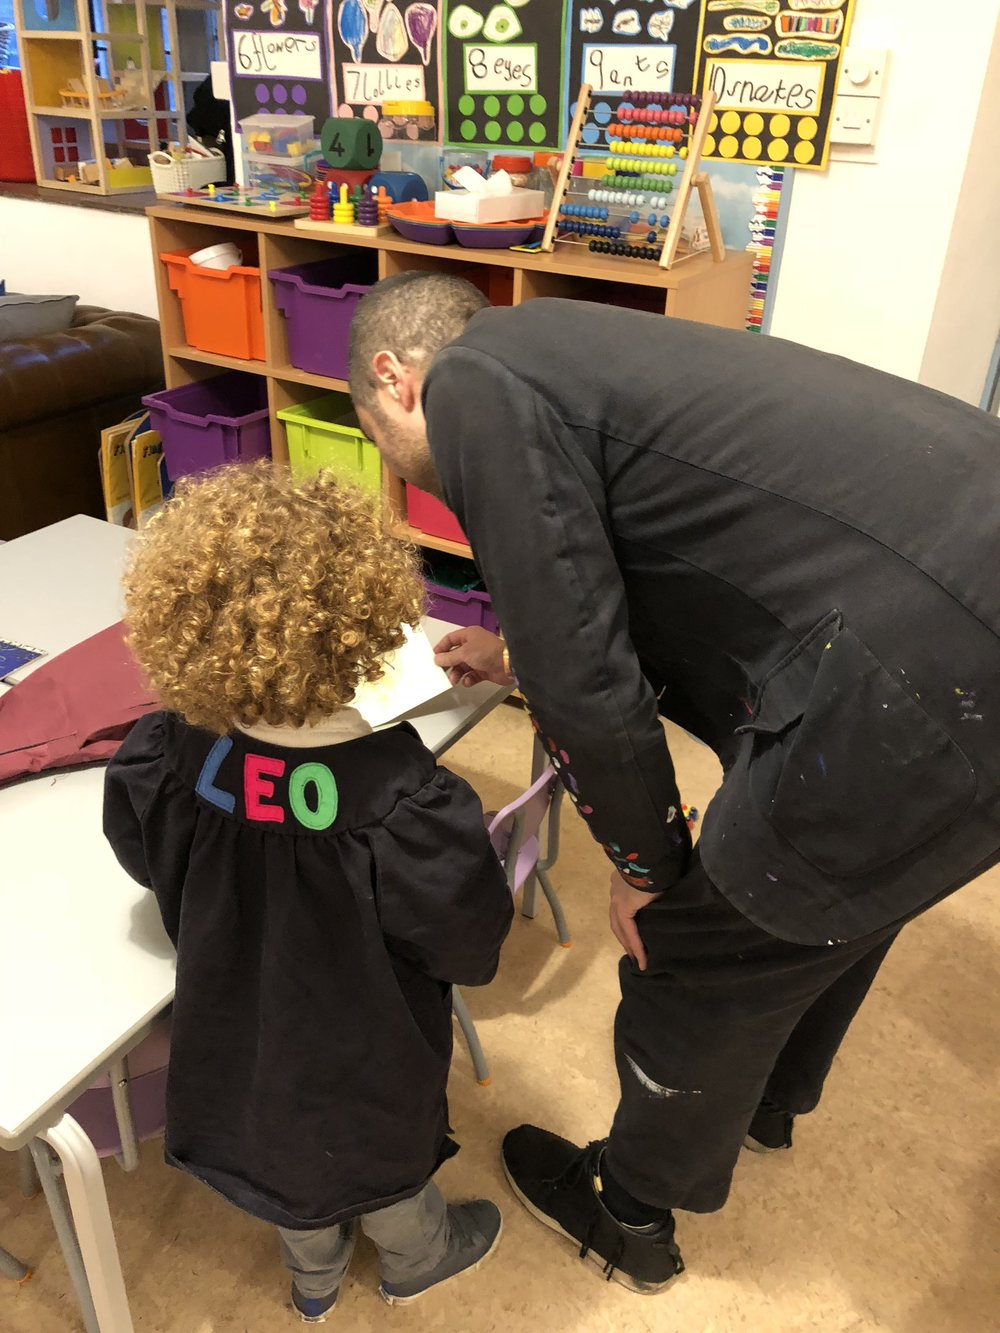 Robi recently visited and gave a presentation to the children at St Marks primary school,  Primrose Hill. The presentation was about Robi's new gallery in Soho and how he creates his art projects.